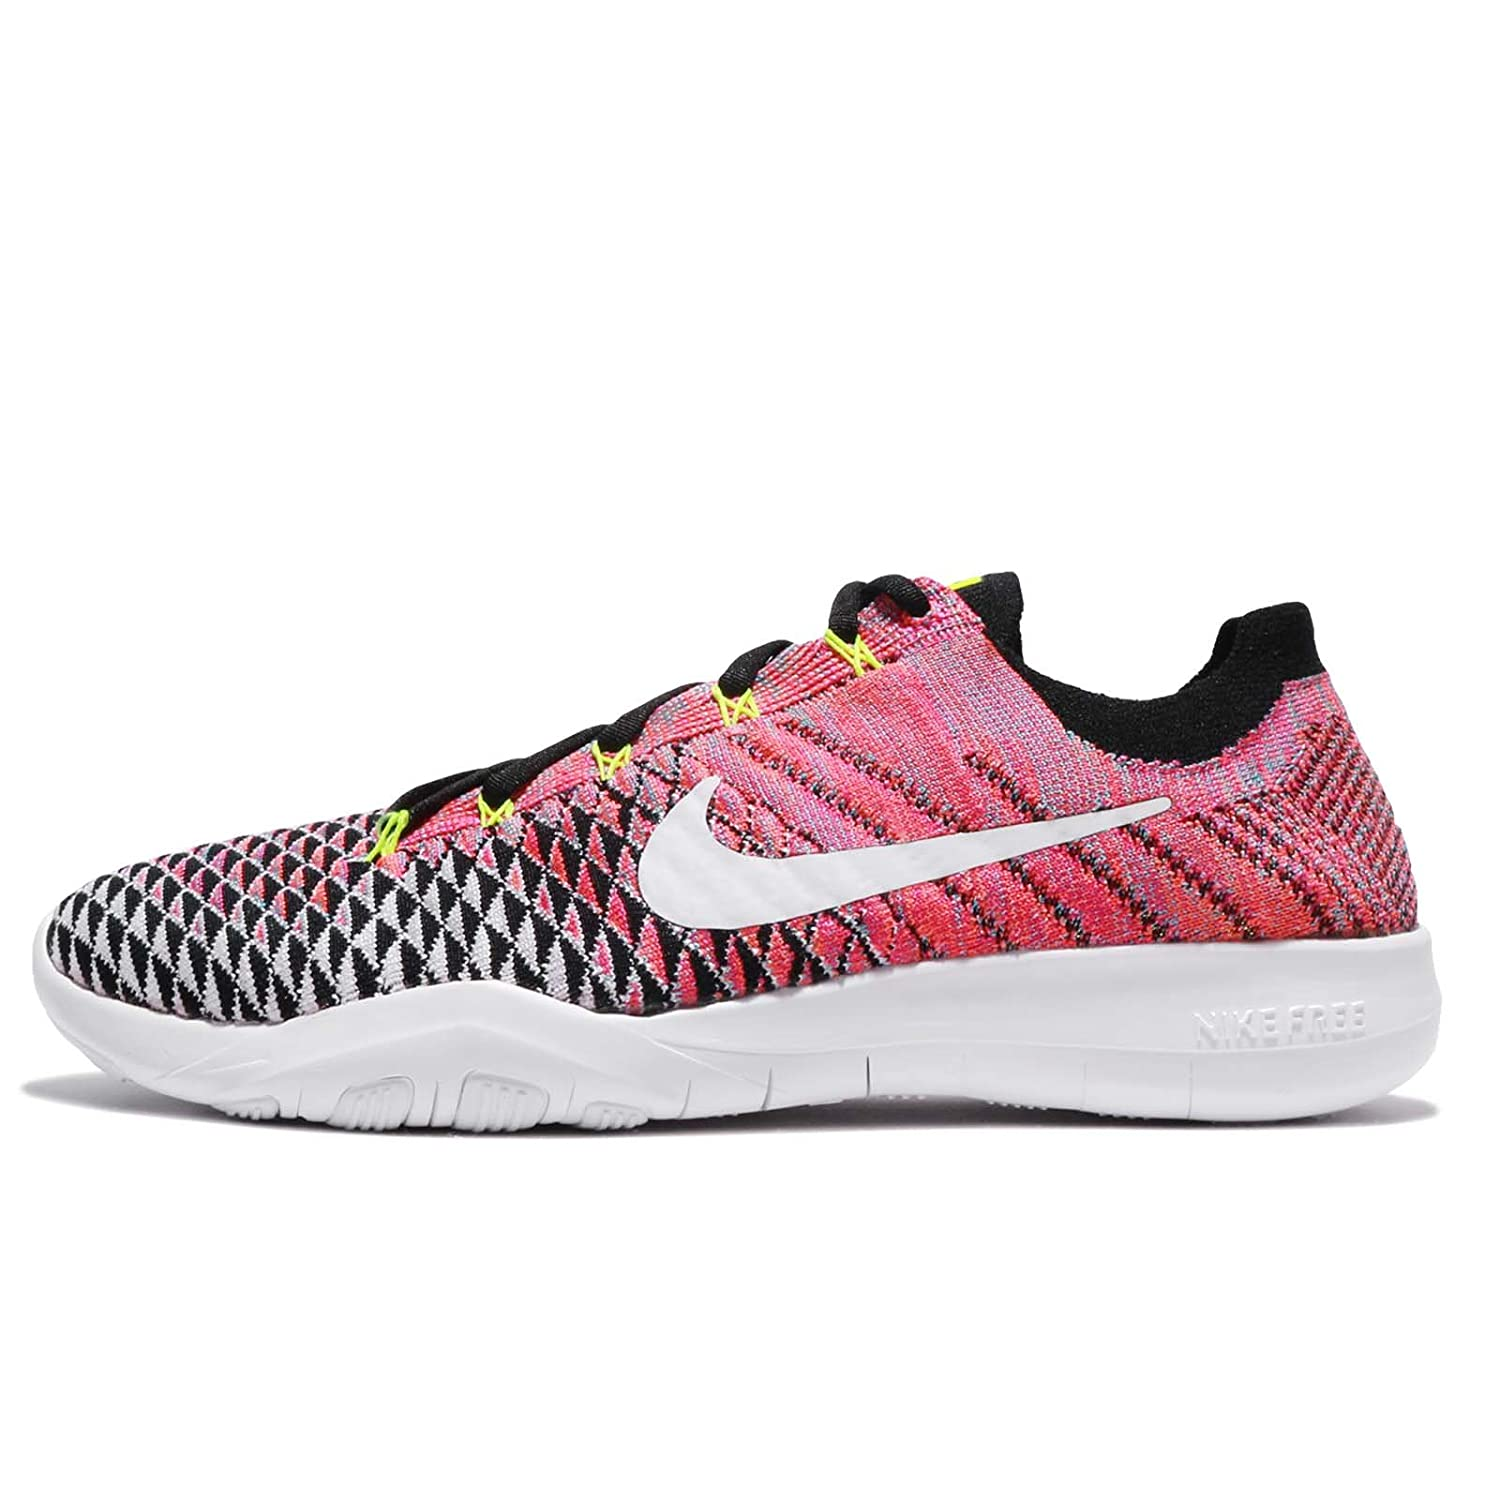 reputable site ca158 9d701 Amazon.com   Nike Women s WMNS Free TR Flyknit 2, Black White-Volt-Deadly  Pink, 6 M US   Road Running